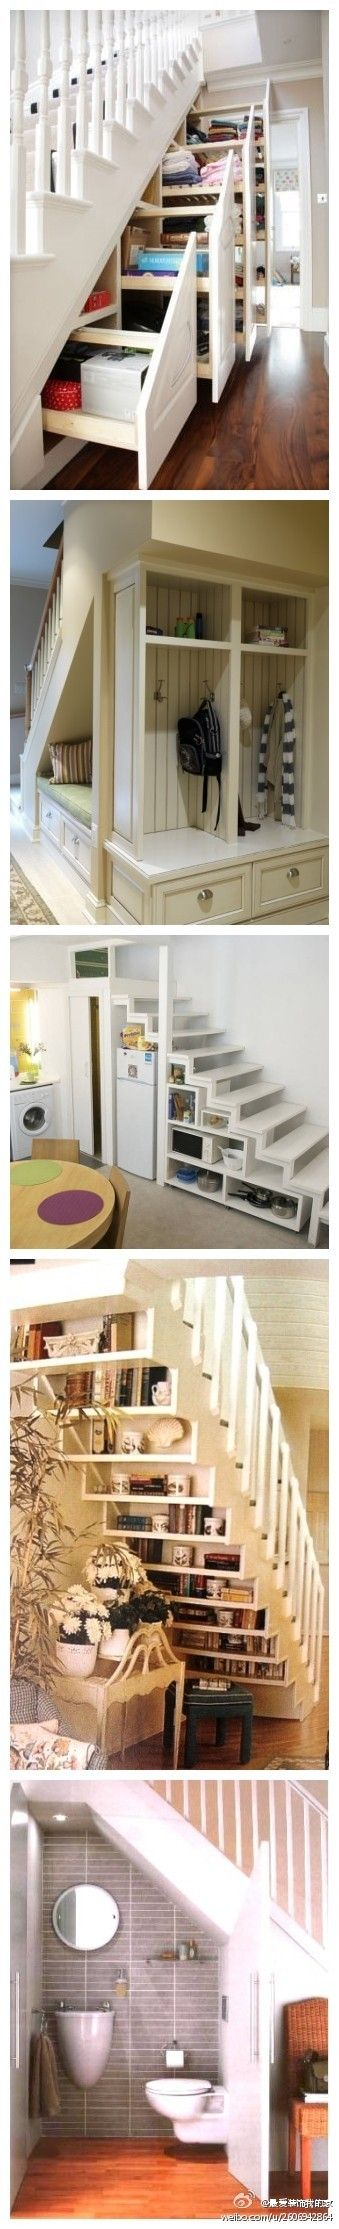 Storage under Stairs - so smart!